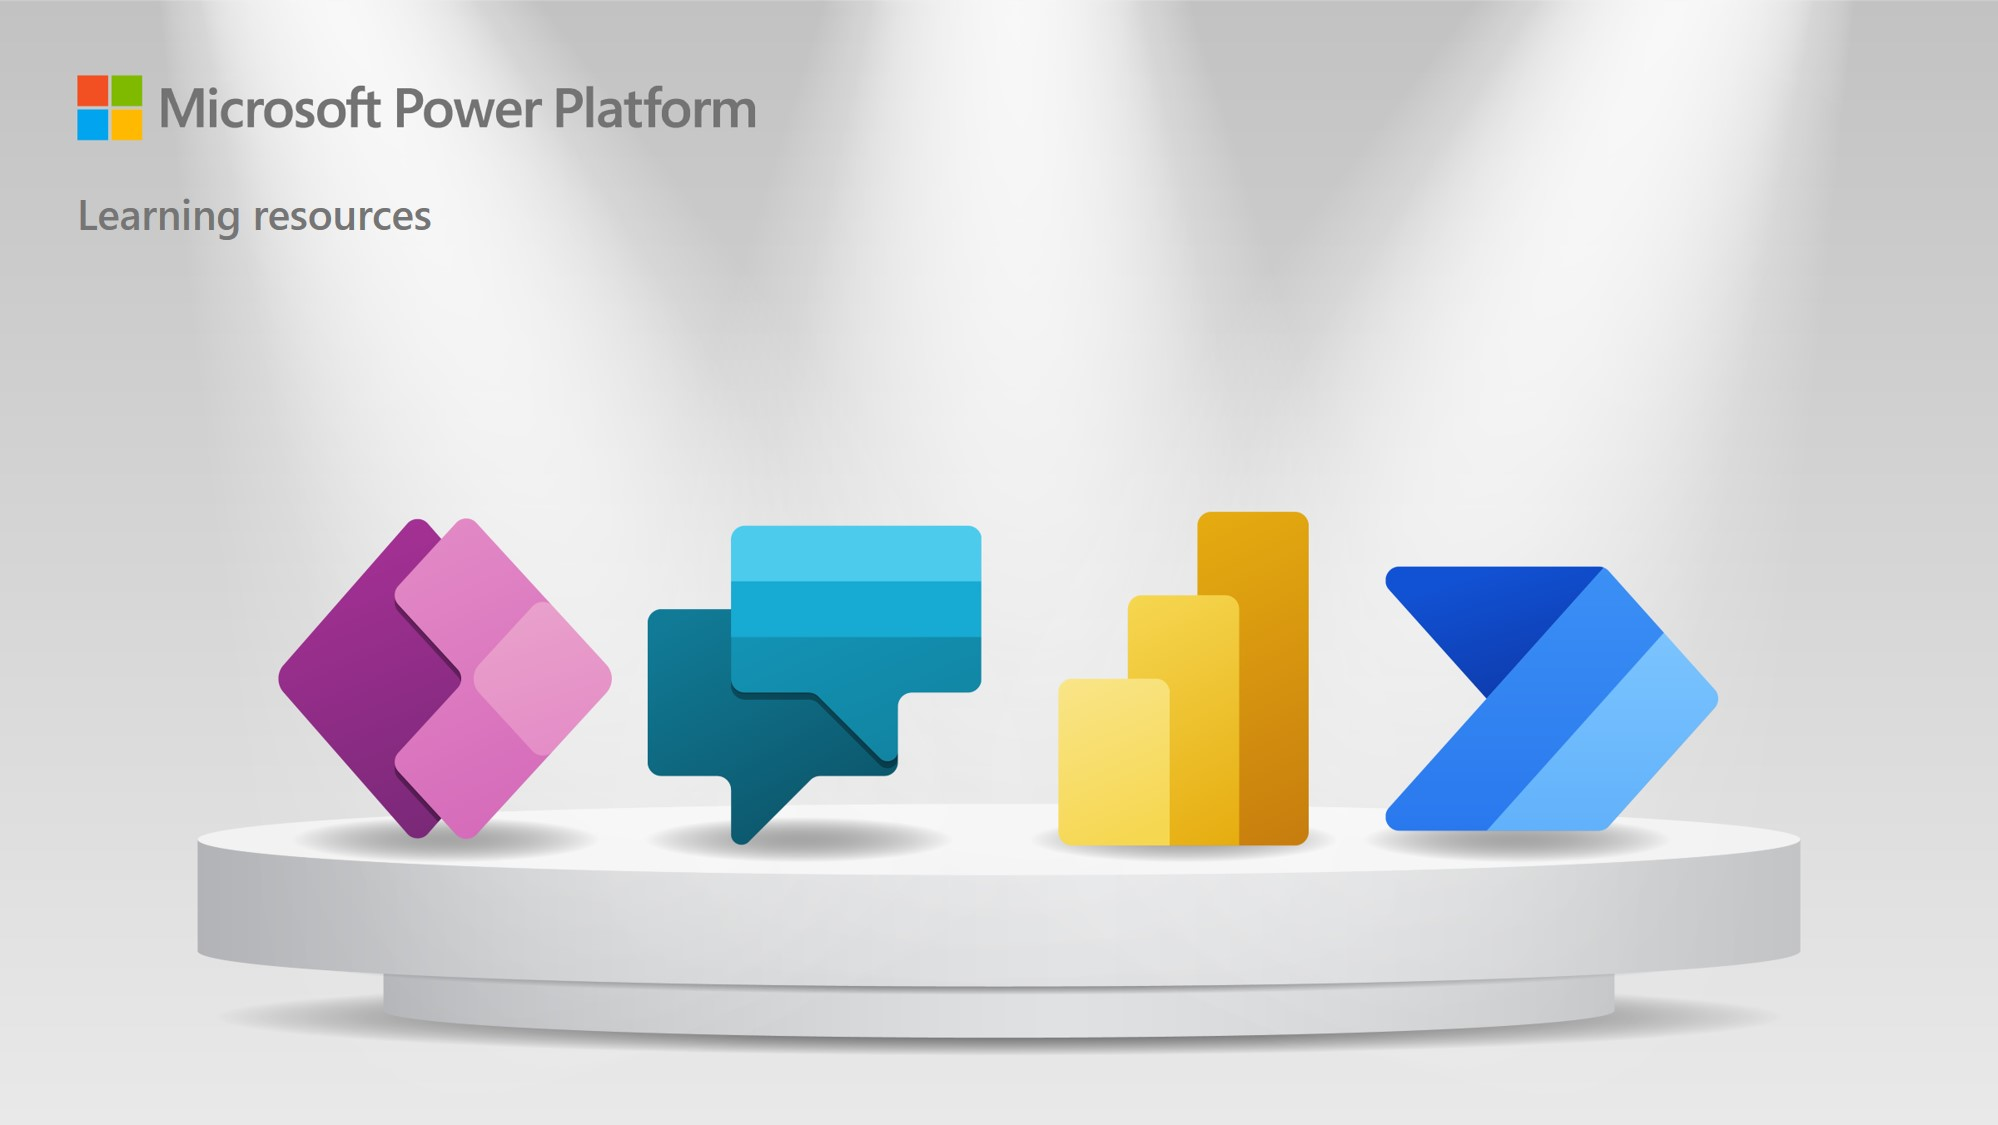 Graphic with Power Platform icons